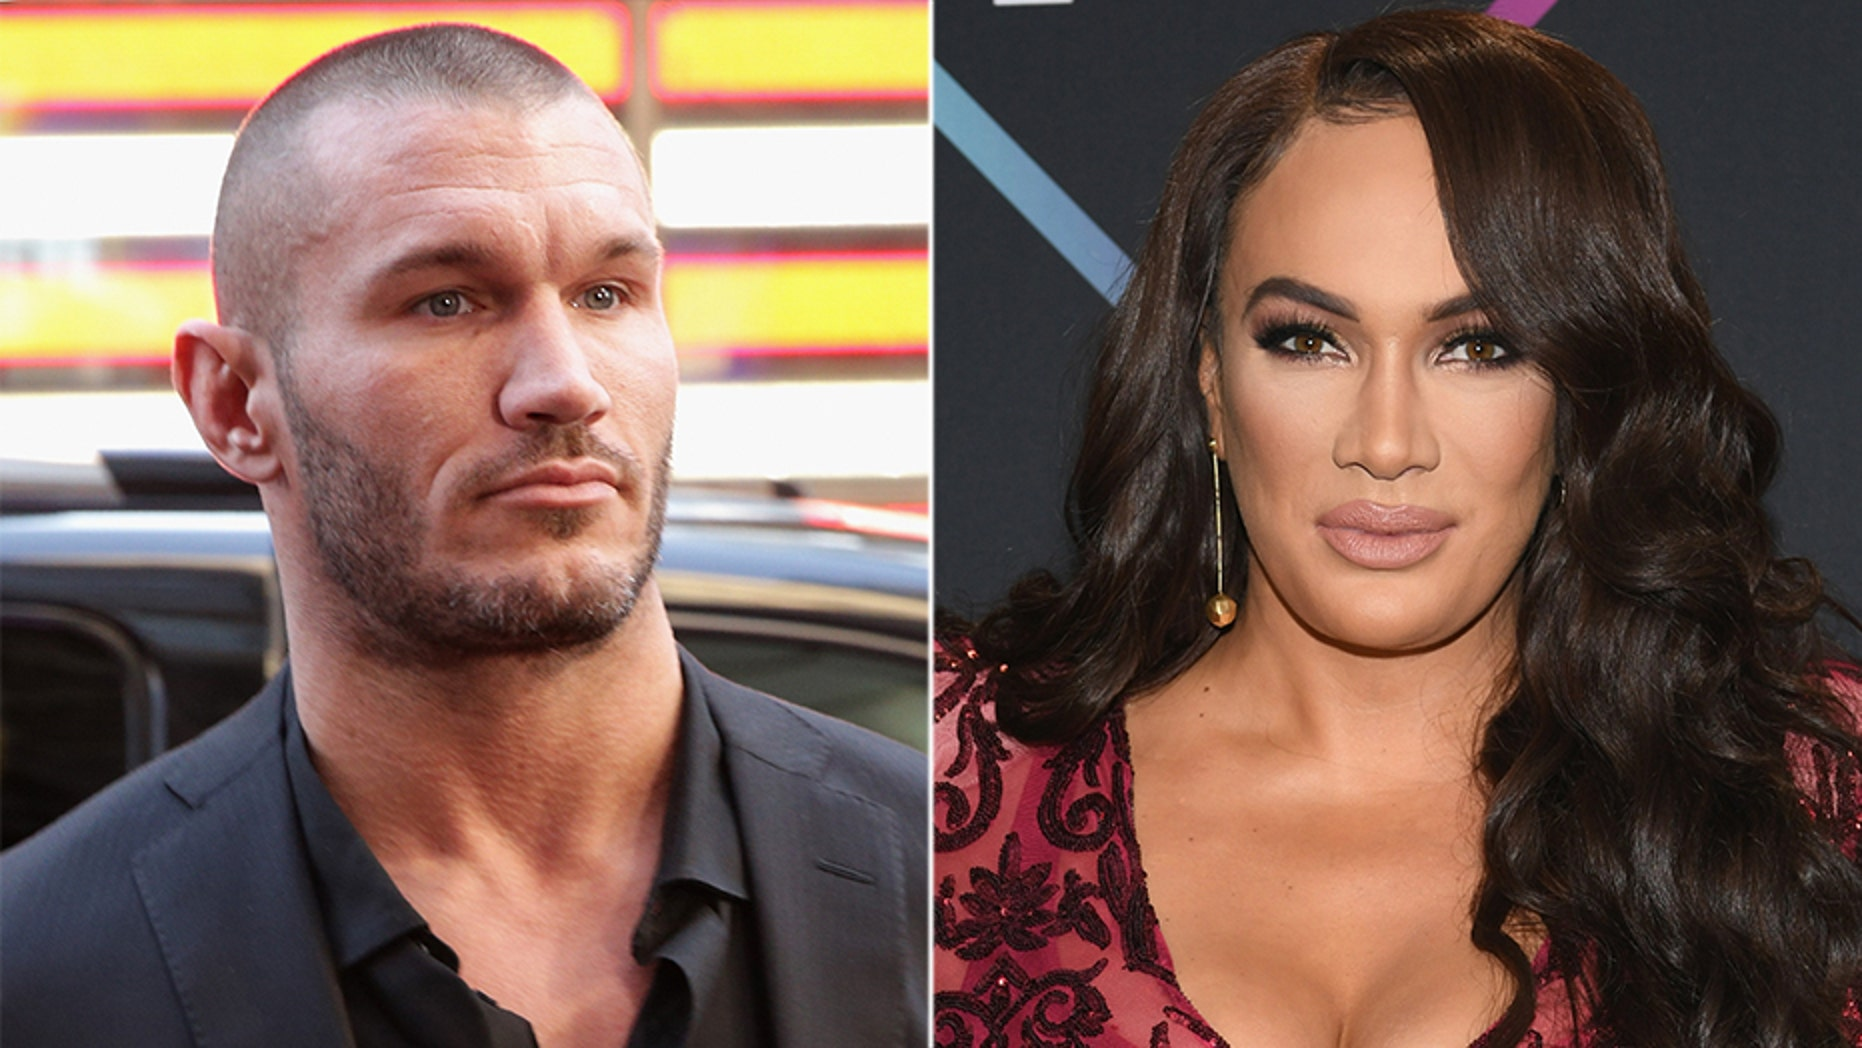 Randy Orton performed his finishing maneuver on Nia Jax.